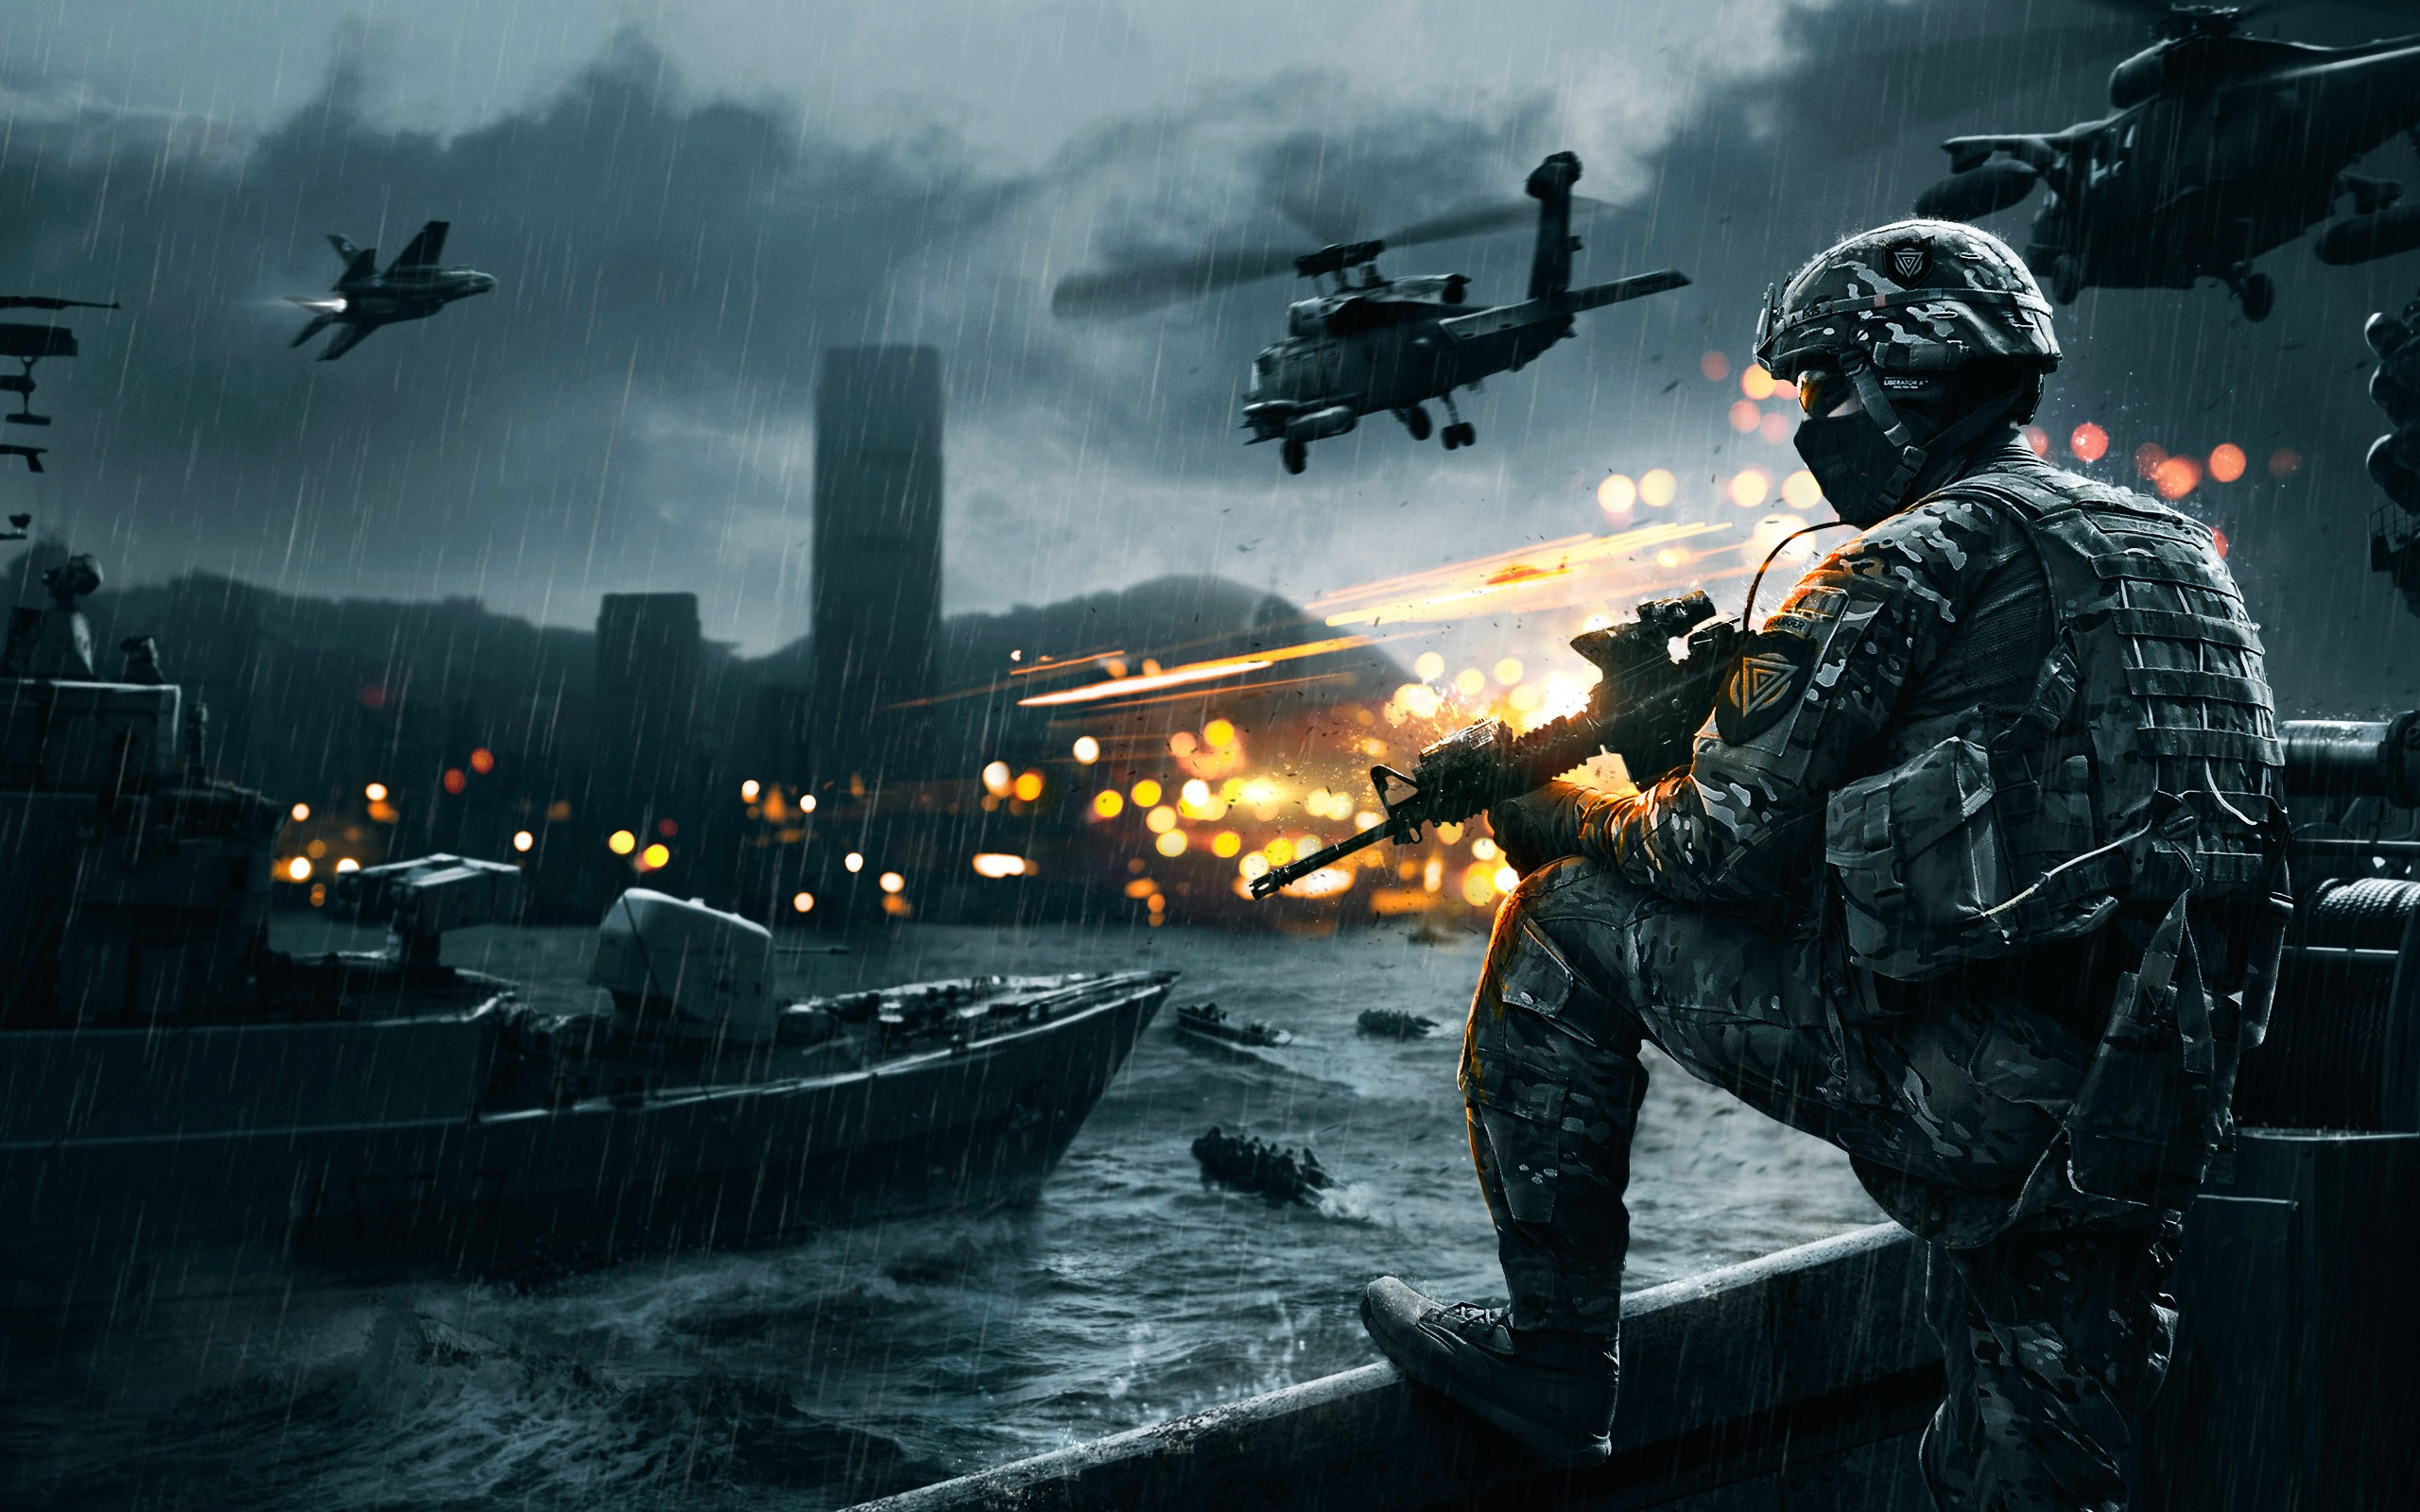 1011 battlefield hd wallpapers | background images - wallpaper abyss